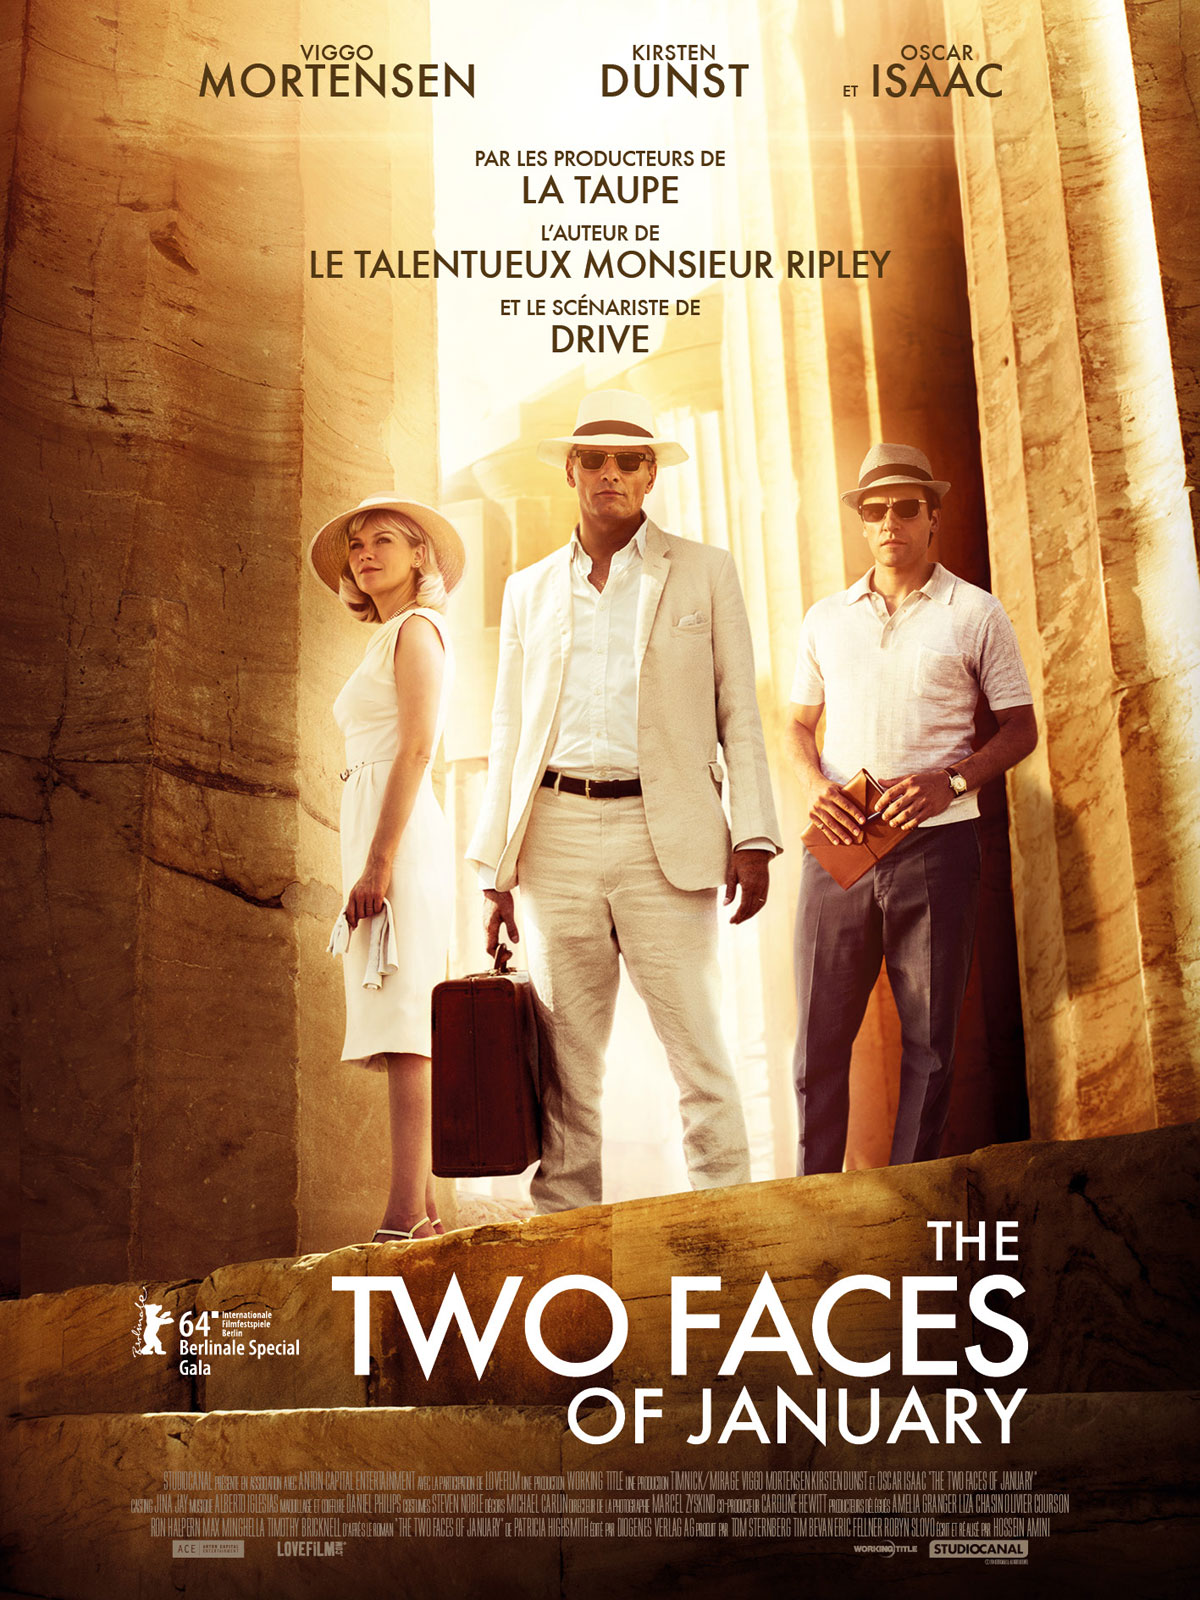 [MULTI]    The Two Faces of January    FR MKV  [DVDRIP]